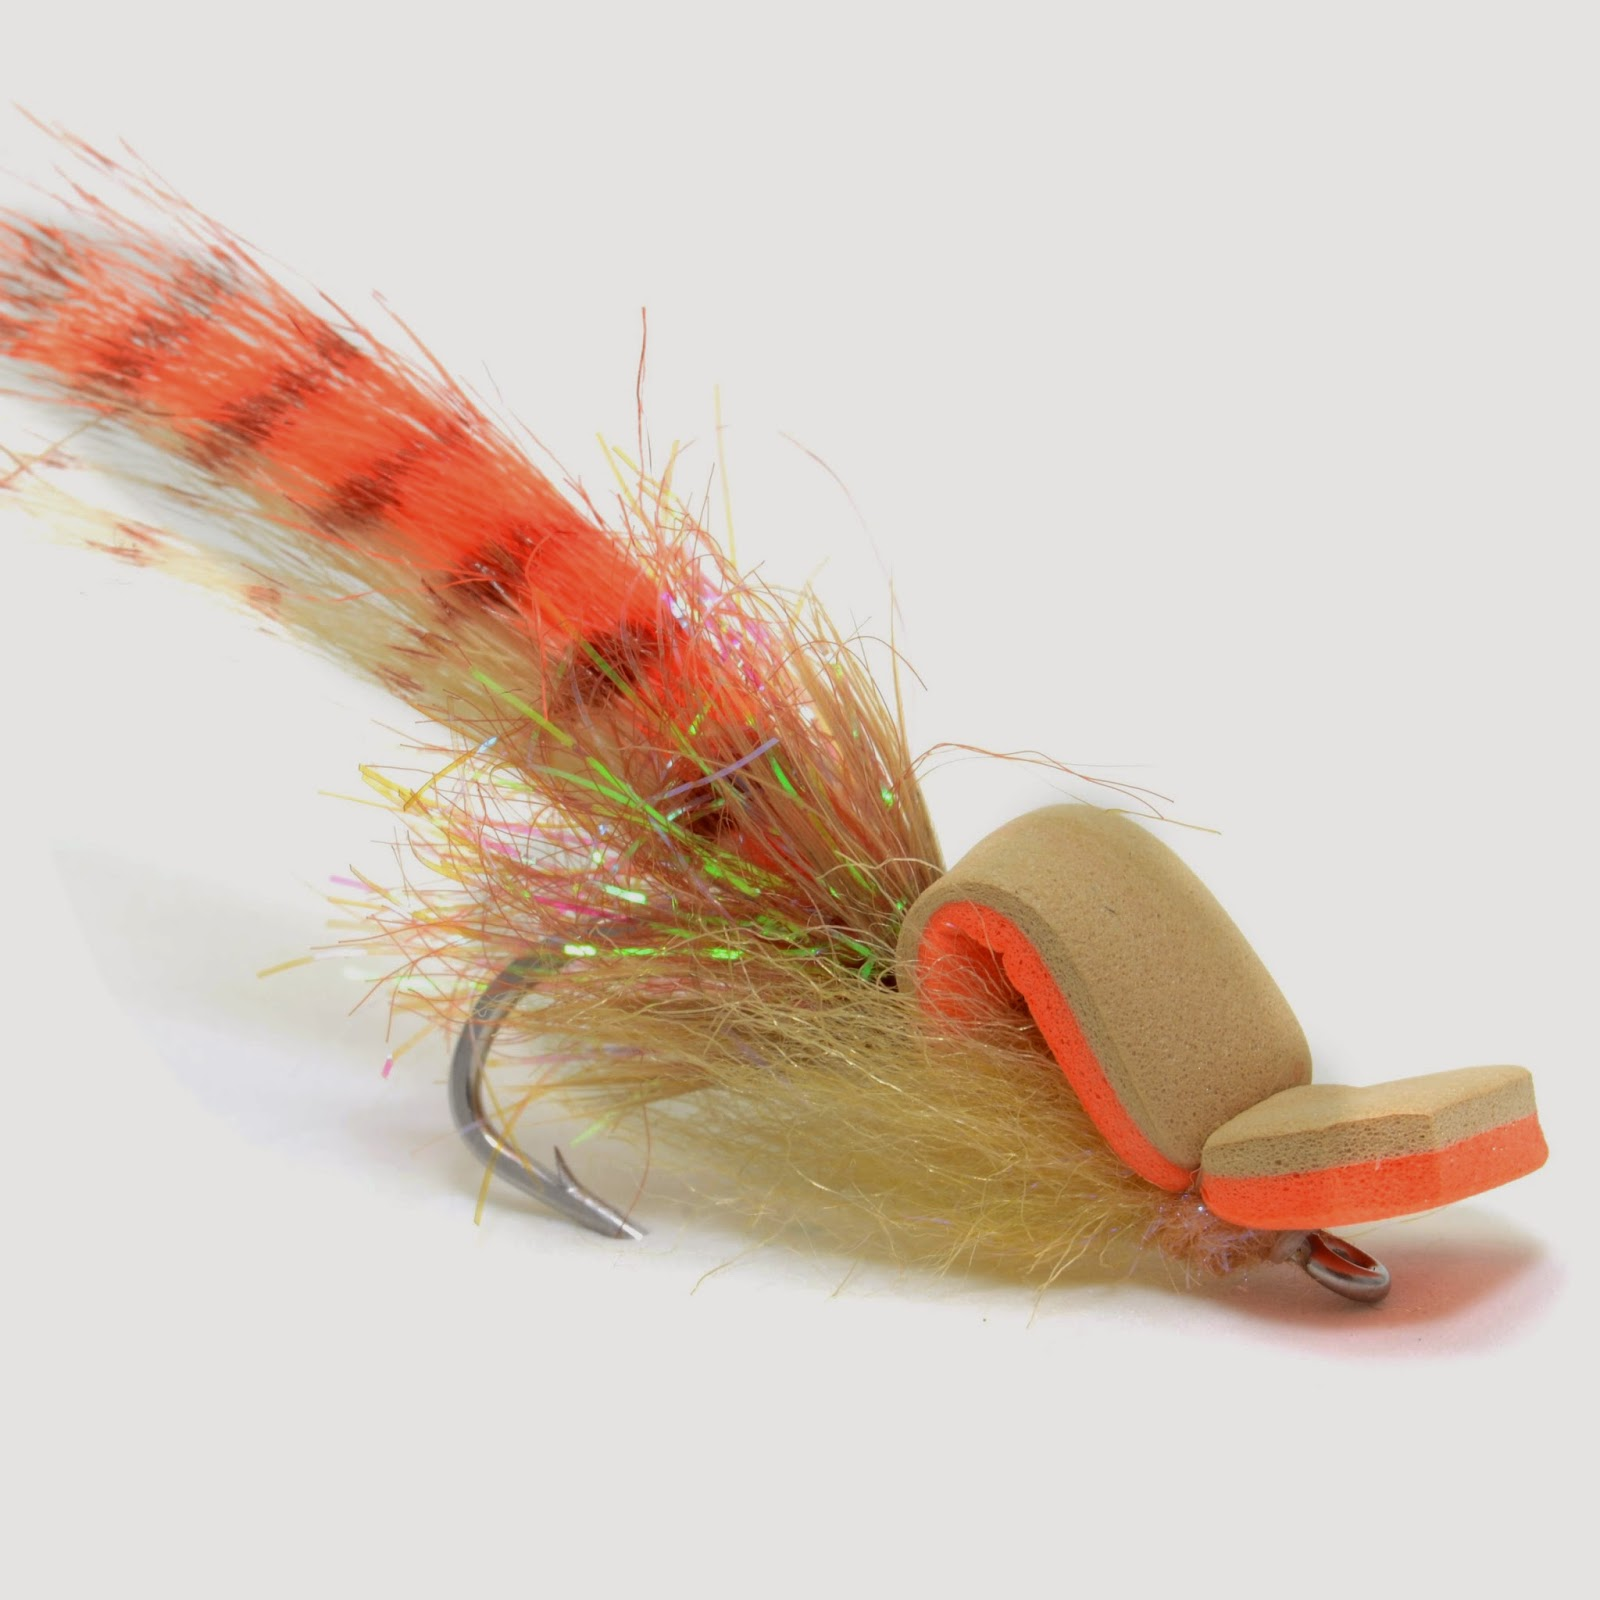 Saltwater gurgler fly fish food fly tying and fly fishing for Fly fish food